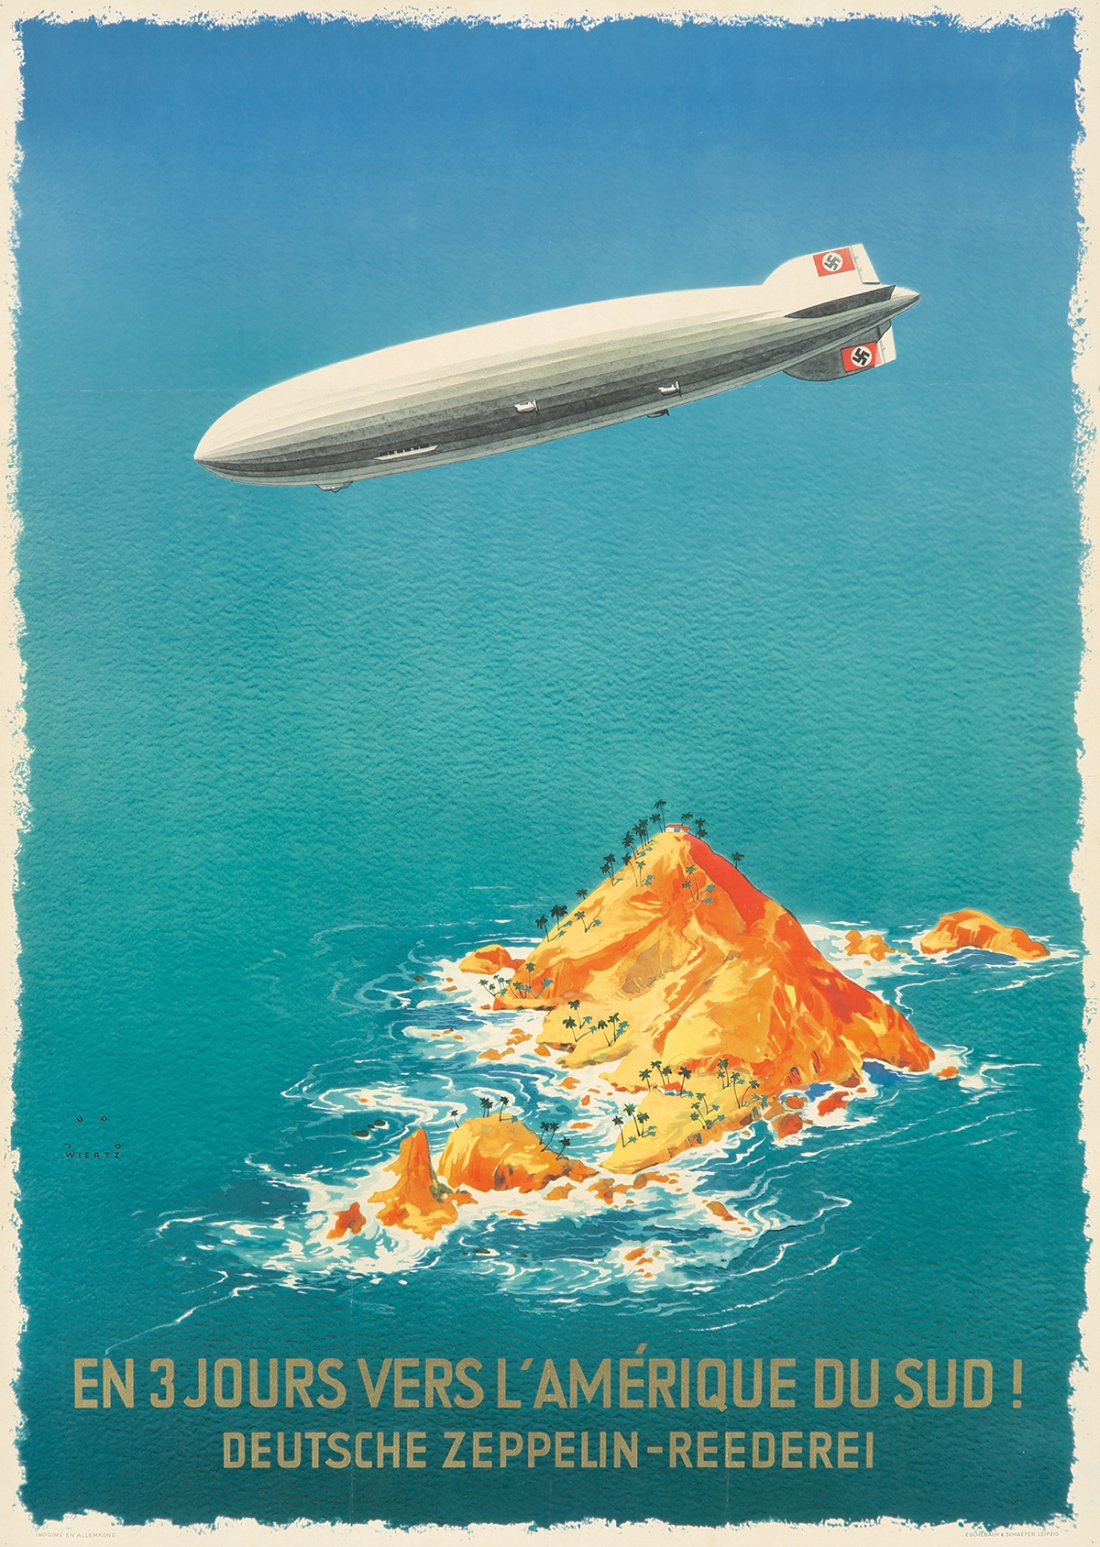 Poster advertising the Deutsche Zeppelin-Reederei which made transatlantic flights to Brazil. ca. 1936.